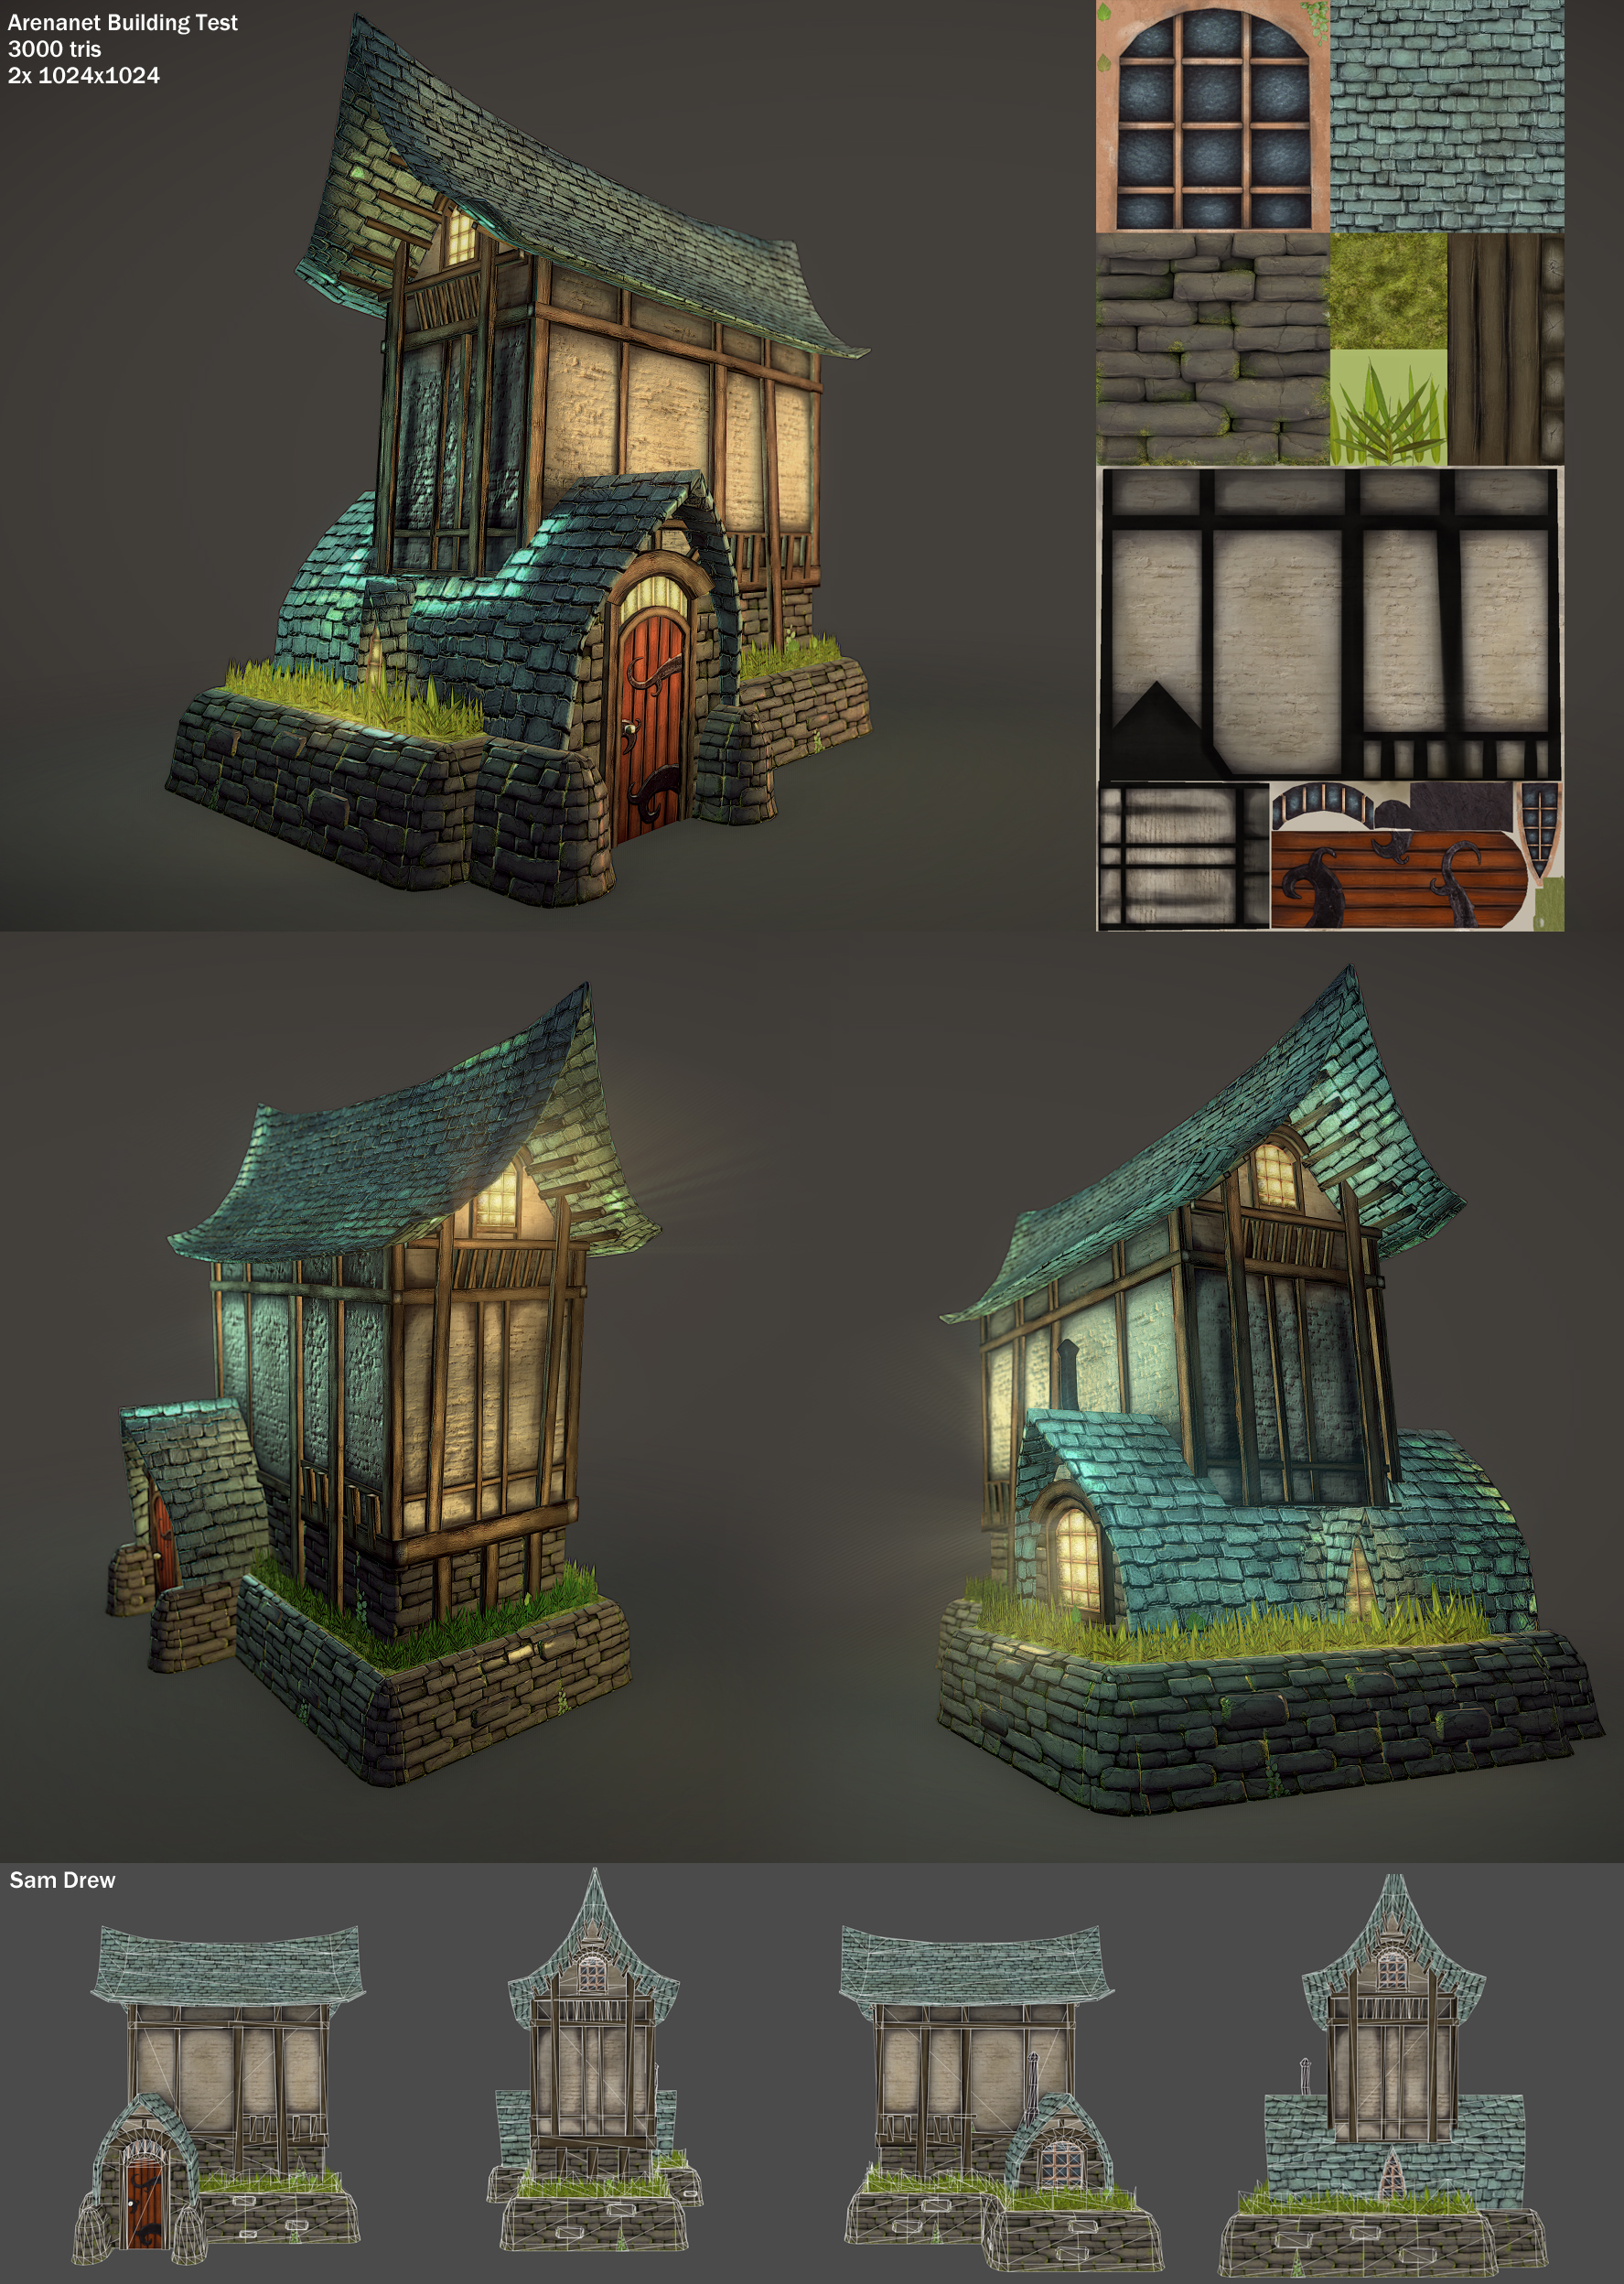 Arenanet Building Test by samdrewpictures